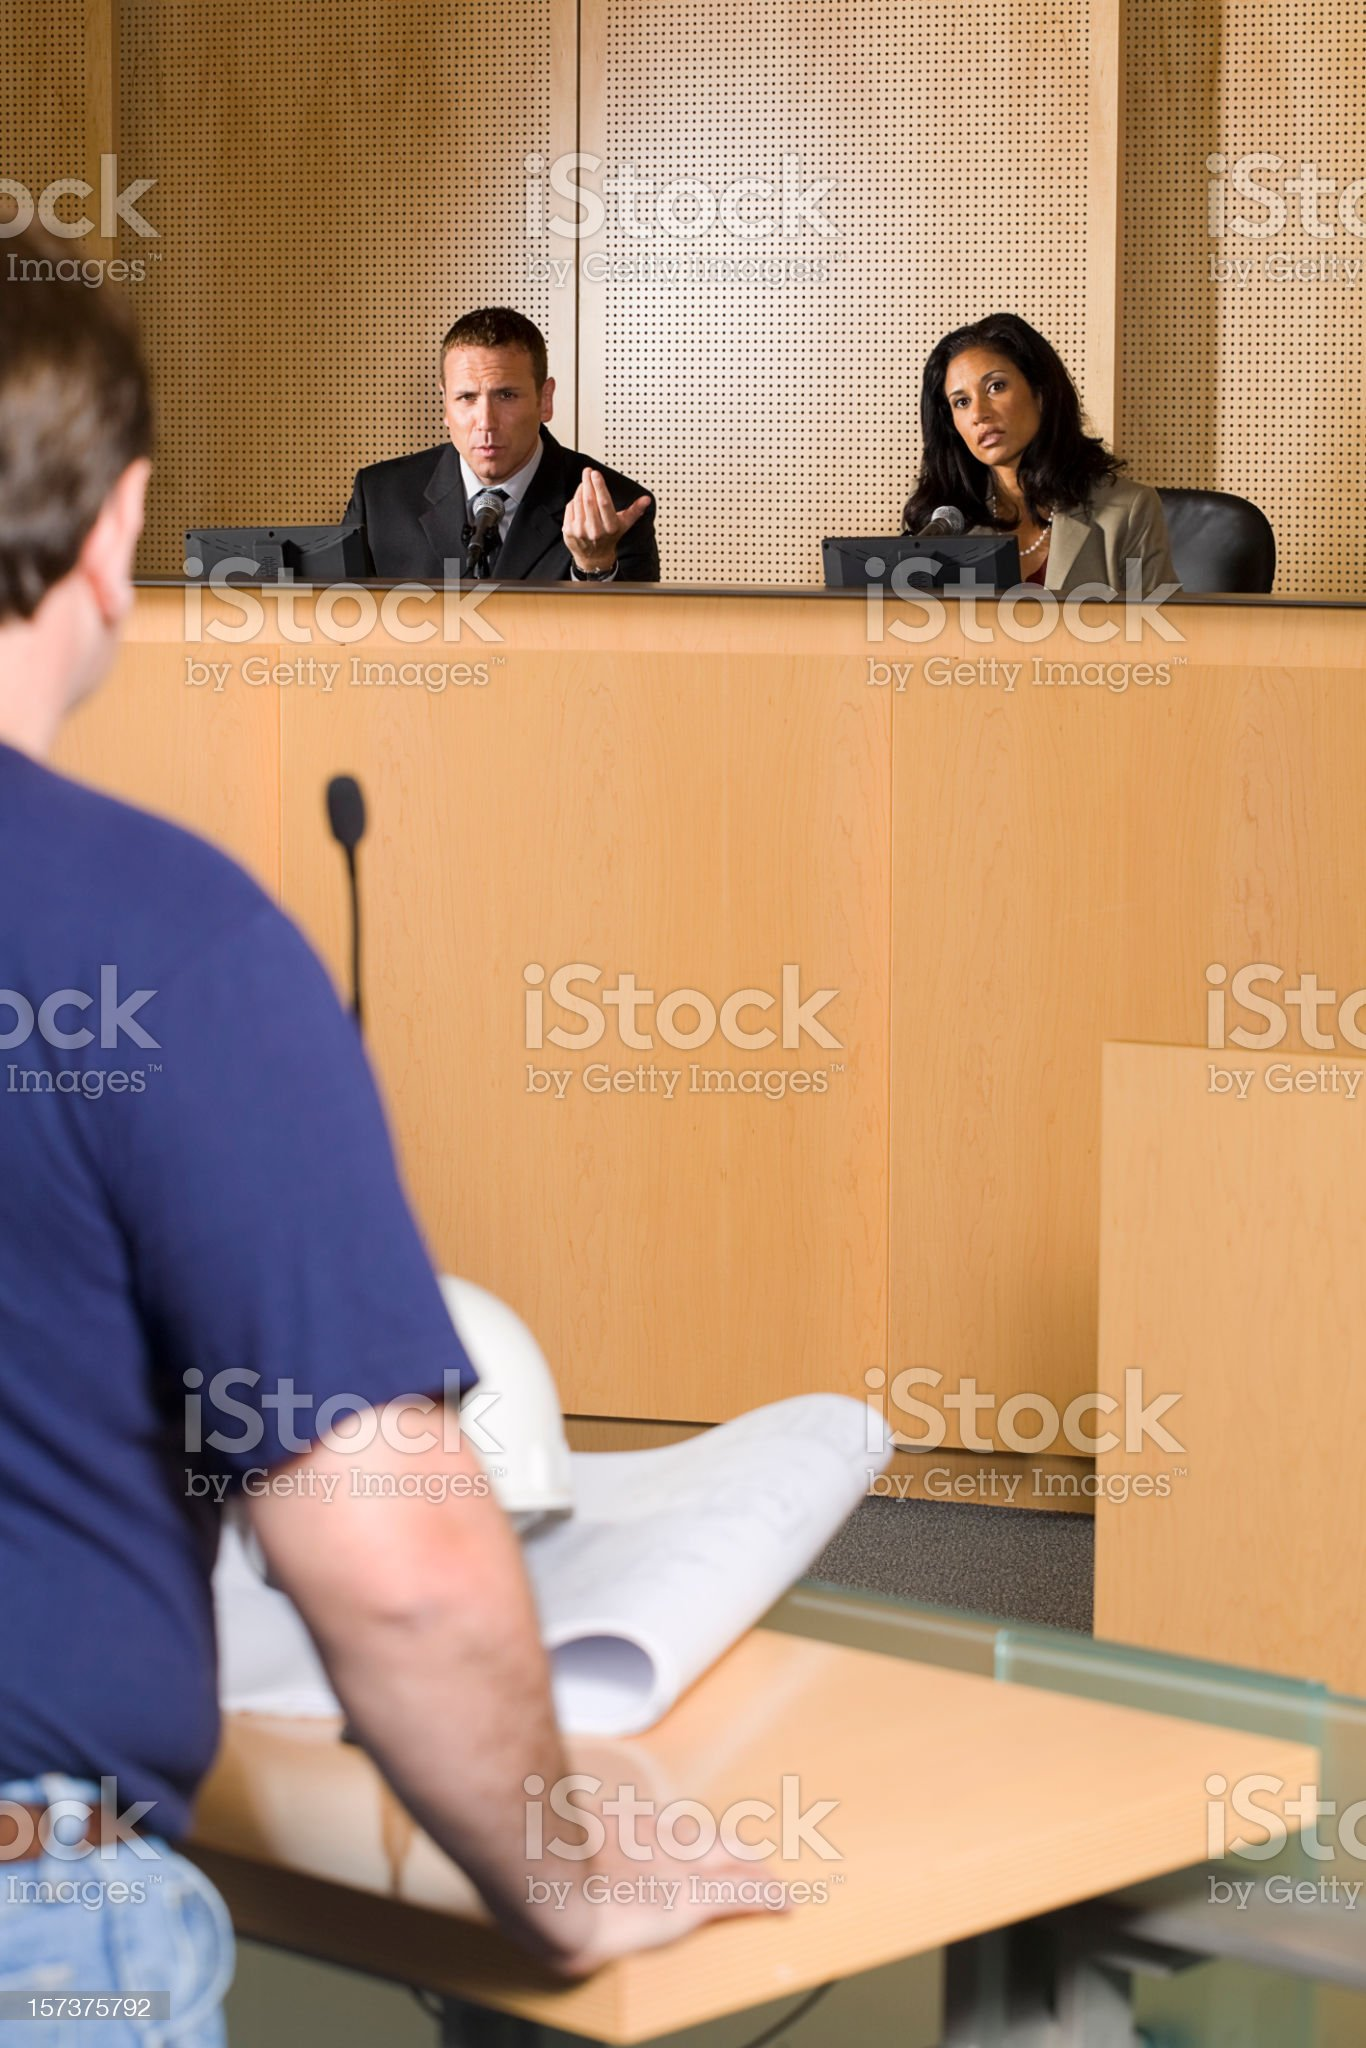 City Council Meeting royalty-free stock photo